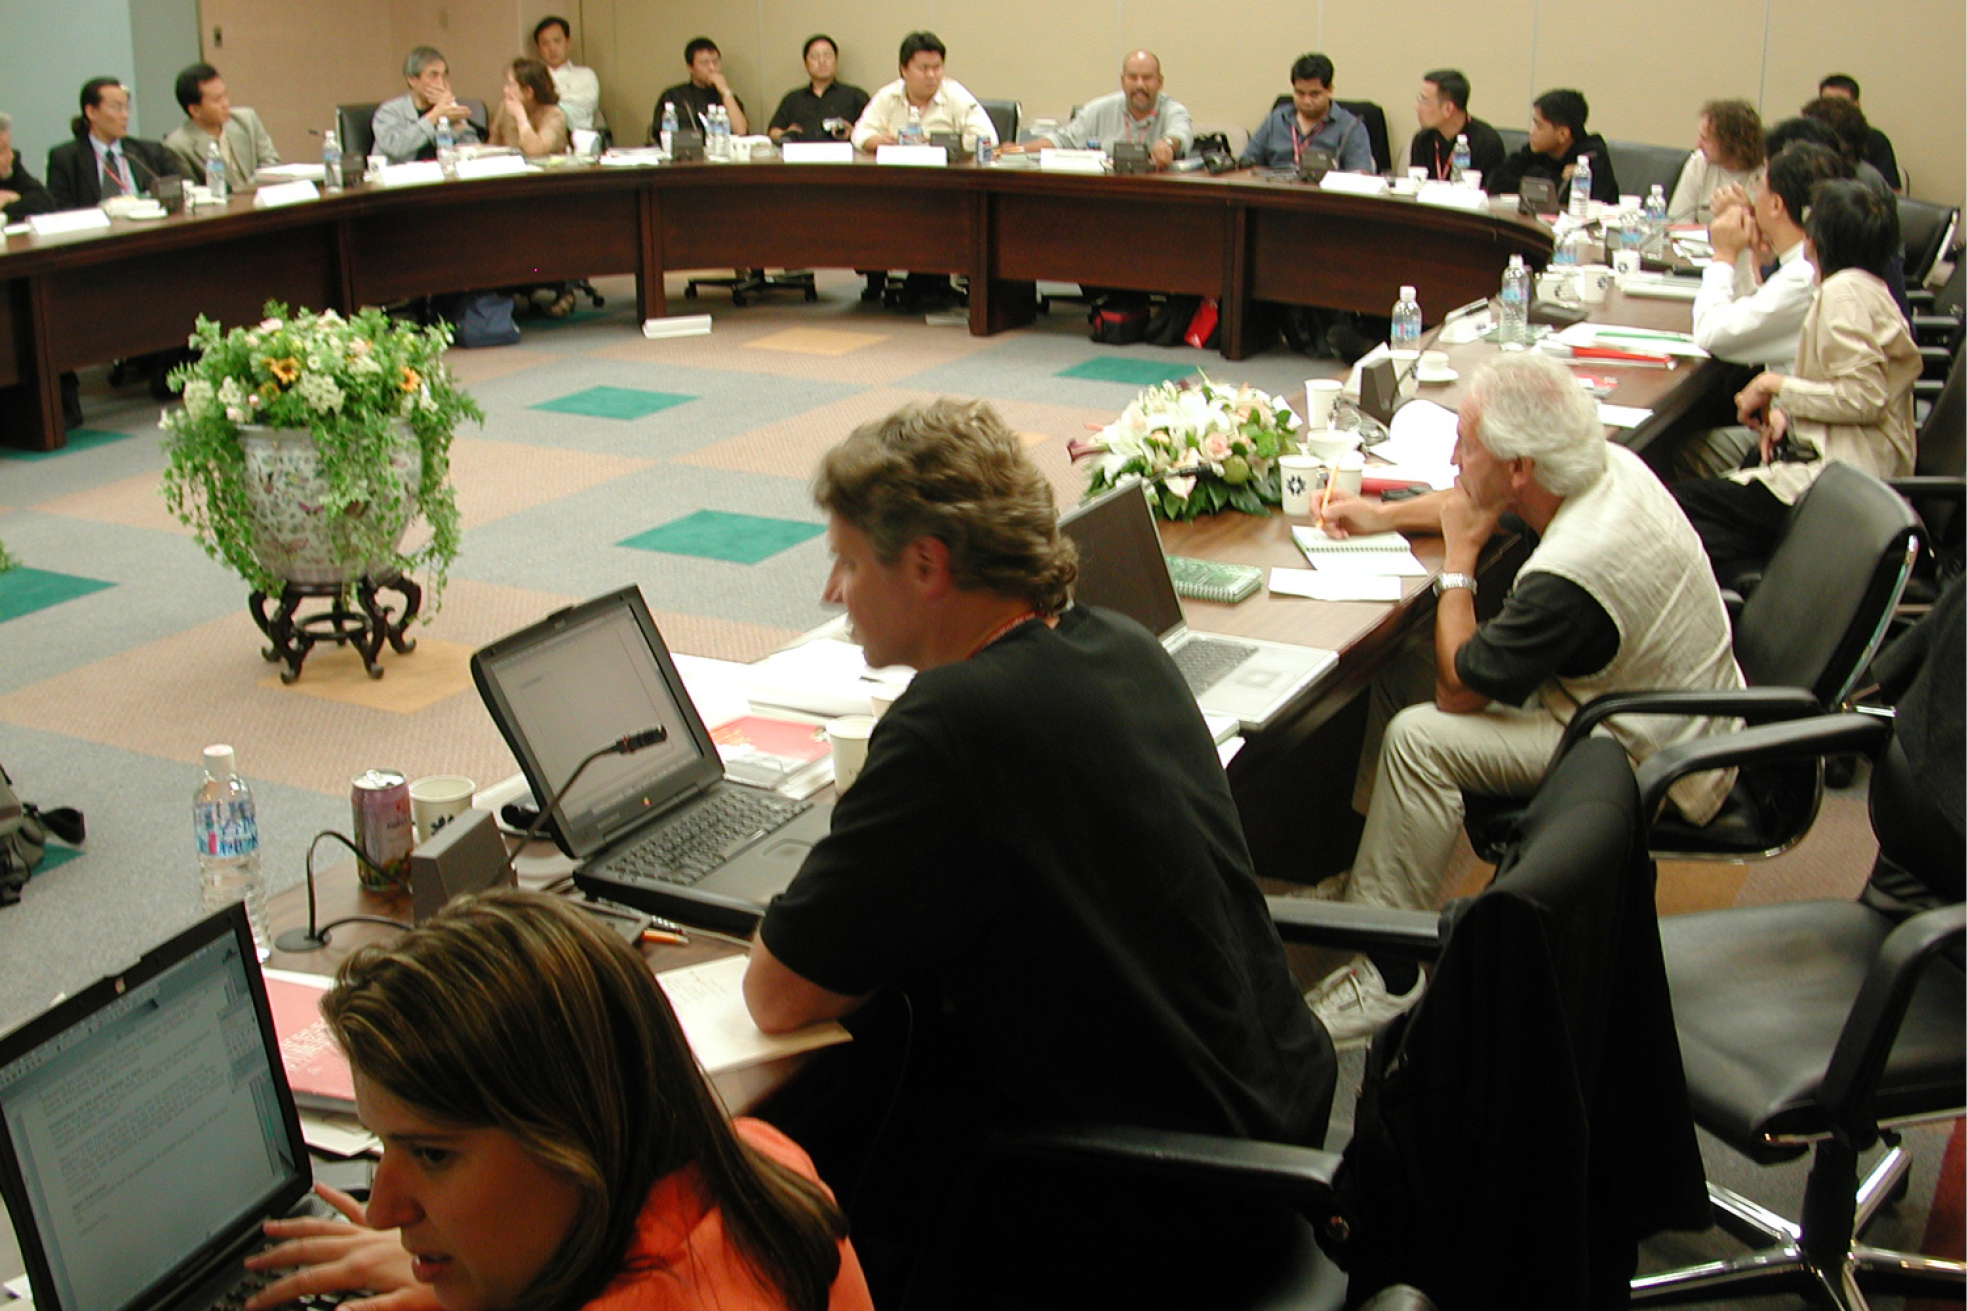 whwWeb_About_whw_Activities_TW_ICO_Asia Regional Meeting.jpg